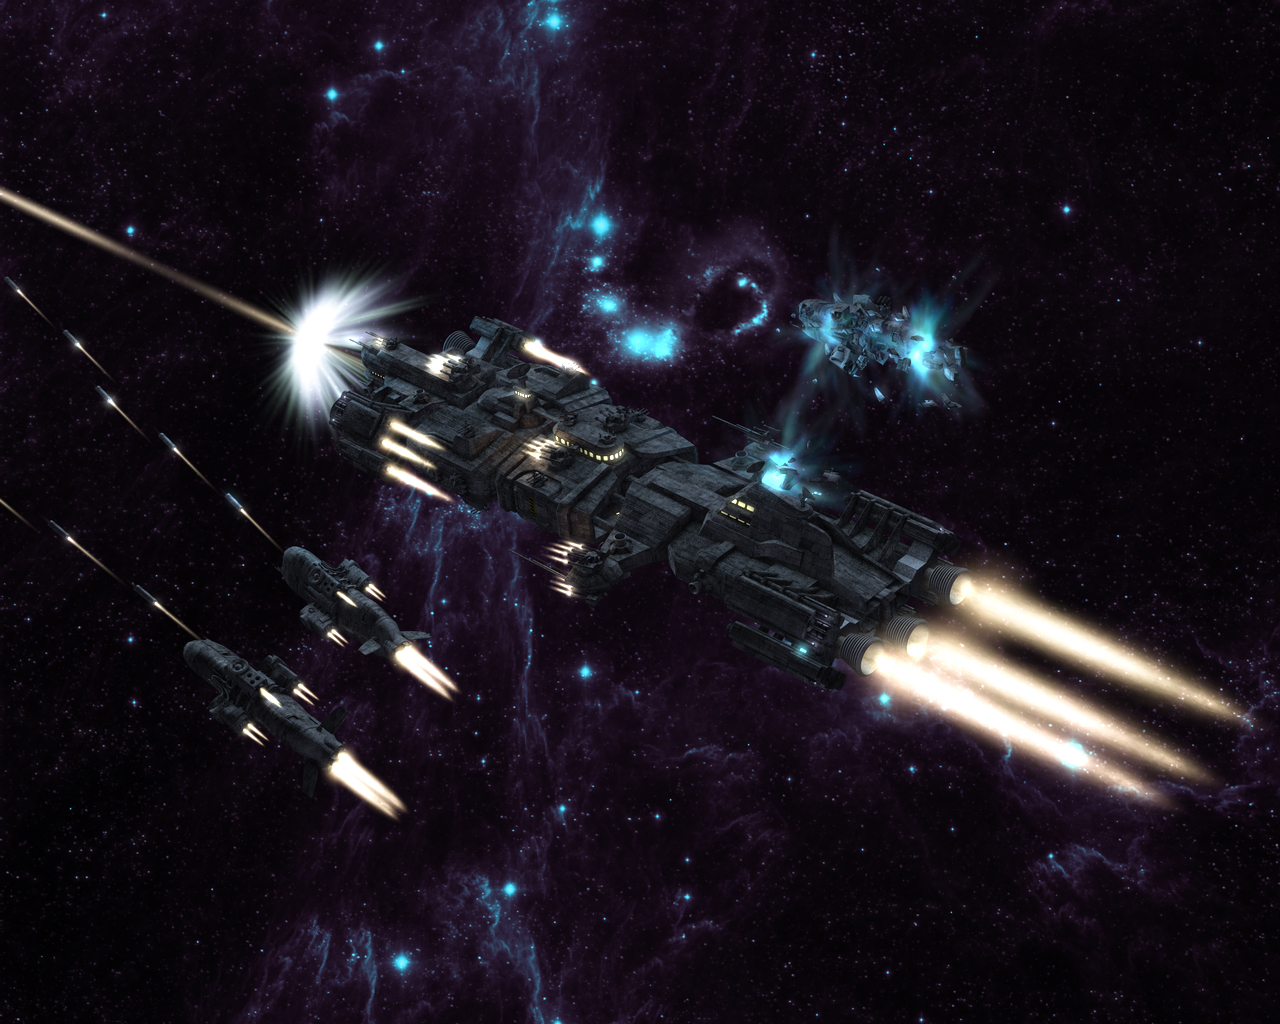 Halo Space Battle Wallpaper Images Pictures   Becuo 1280x1024